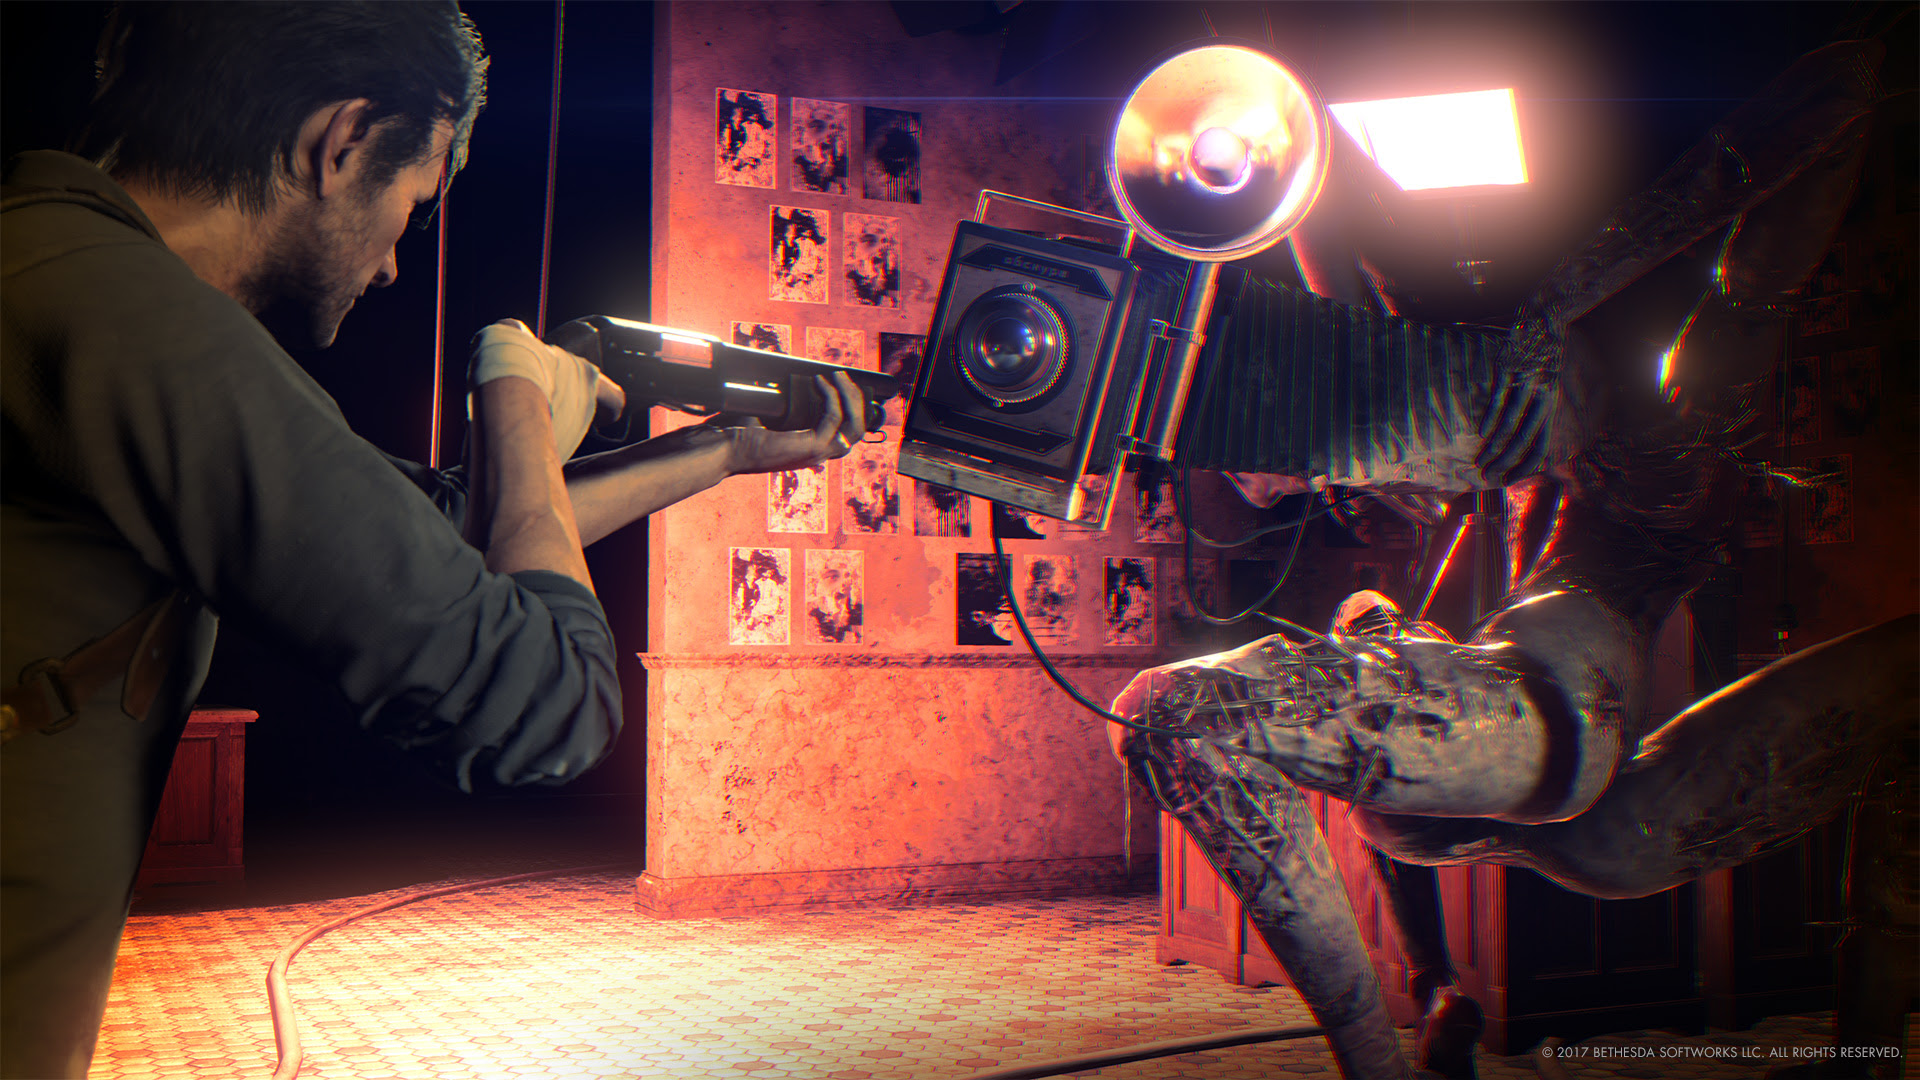 Here are four new clips of The Evil Within 2 screenshot